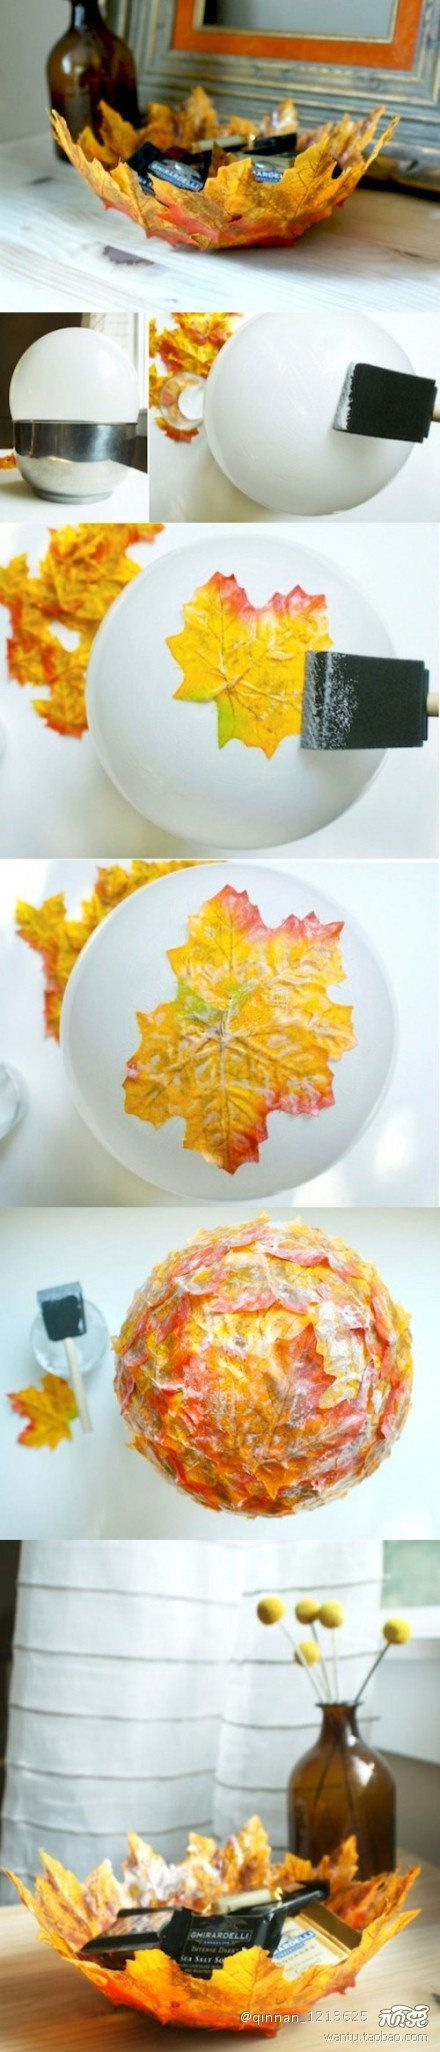 DIY: Leaf Bowl